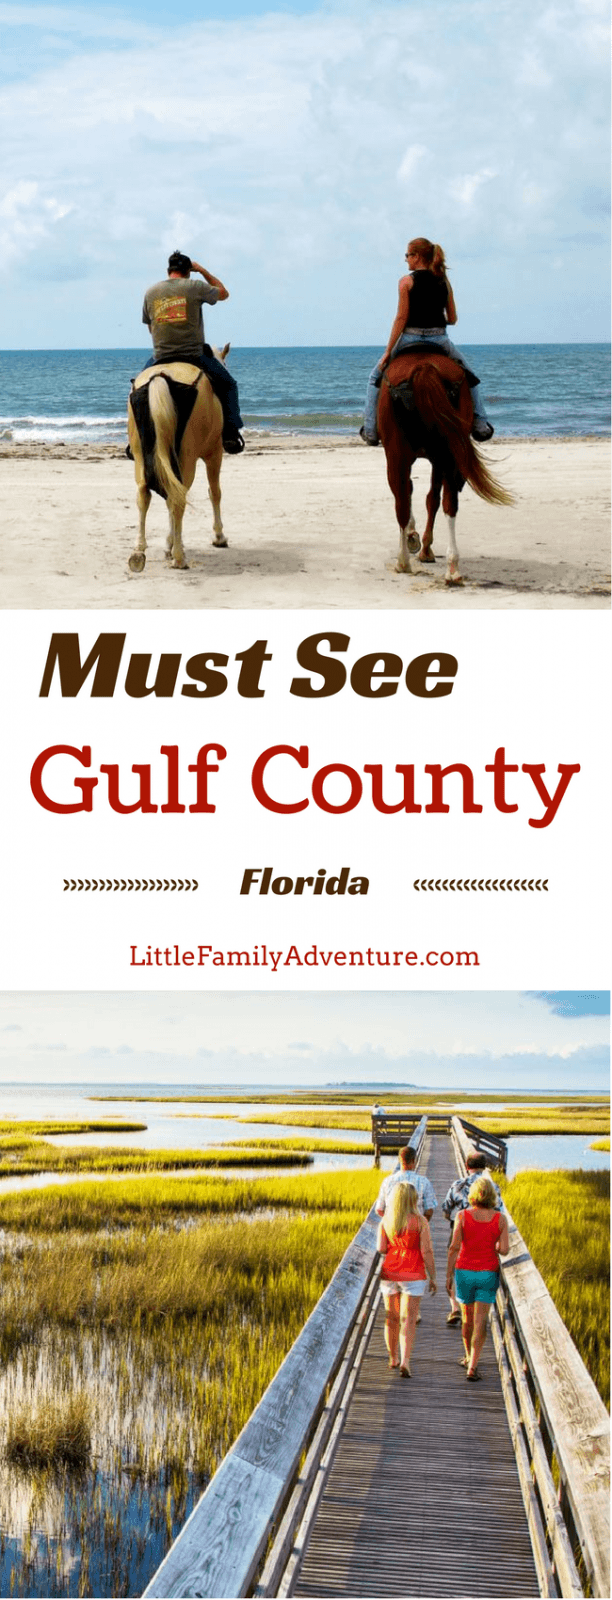 Plan Your Next Family Getaway in Gulf County, Florida - It's filled with family-friendly outdoor fun and sites you will enjoy